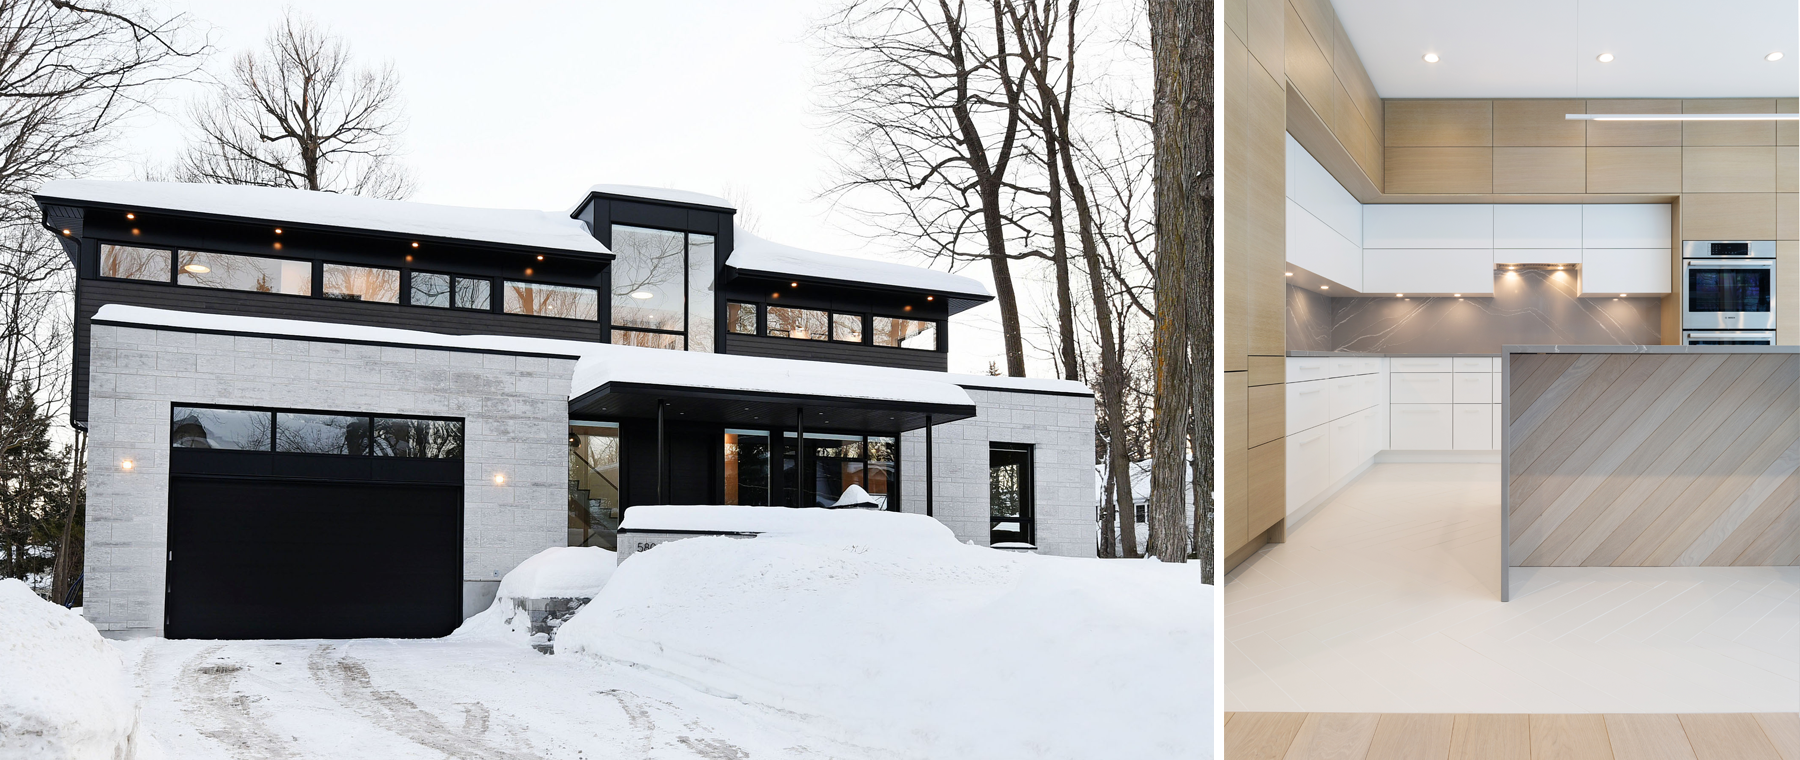 House of the Week: $3.88 million for a rare new build in Rockcliffe